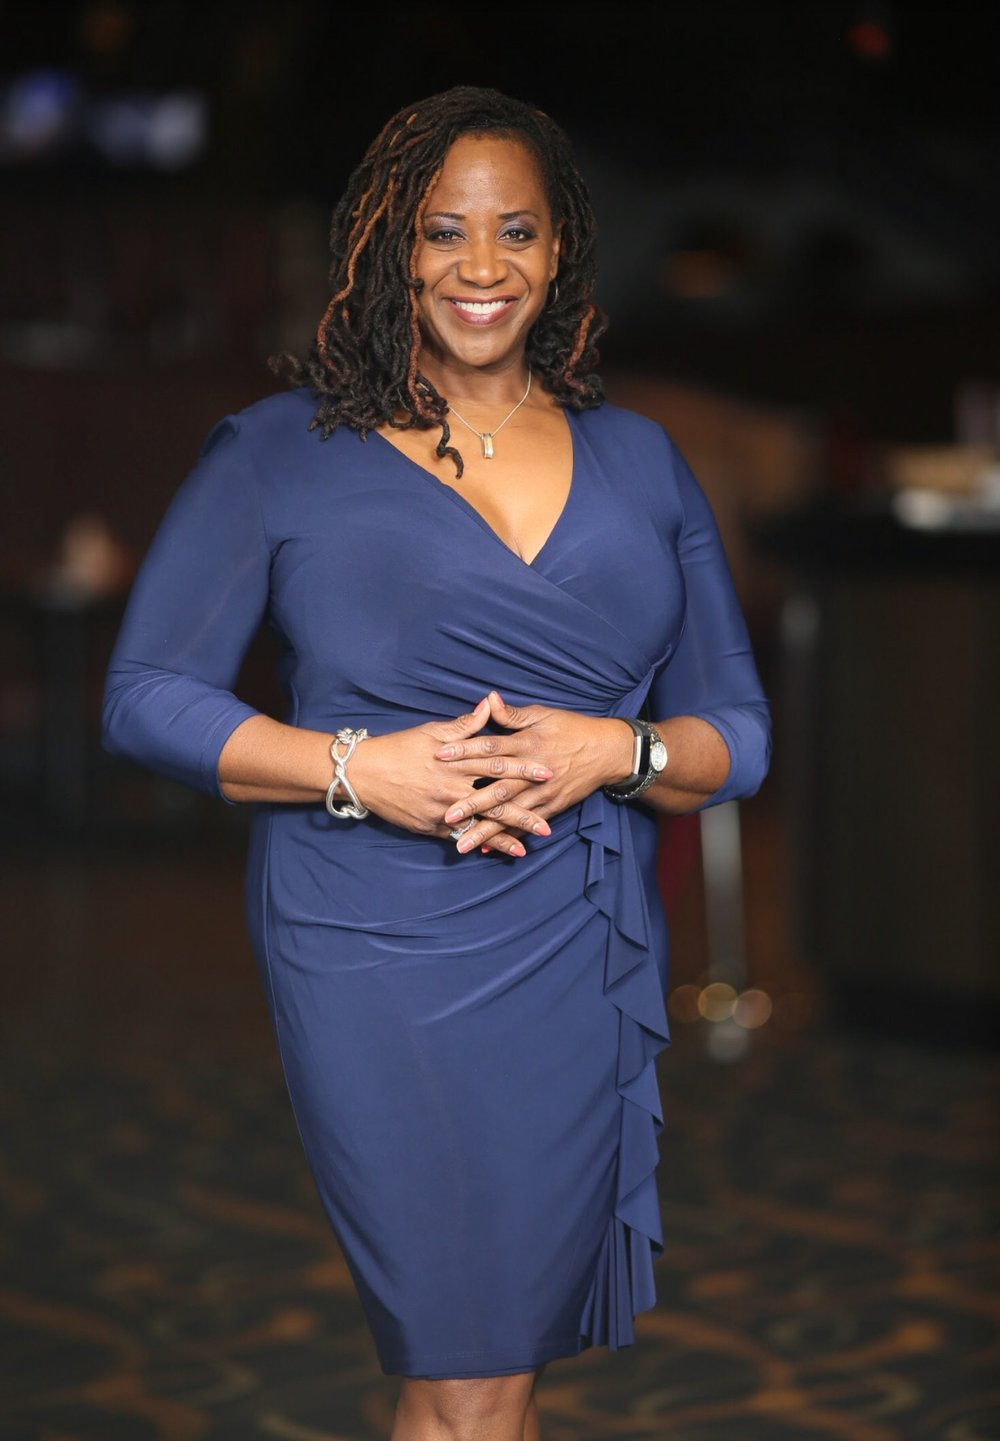 Joy D. Calloway - Before taking Connections to Clients, I had an unfocused, personal social media presence and only a murky idea of my ideal client, their needs, and how I could best meet them. Had I known this course was offered in the Detroit area, I would have signed up sooner. After taking Connections to Clients, I now have a better understanding of the essence of my business and I'm now able to connect to the heart of my ideal client. You cannot afford NOT to make this investment.